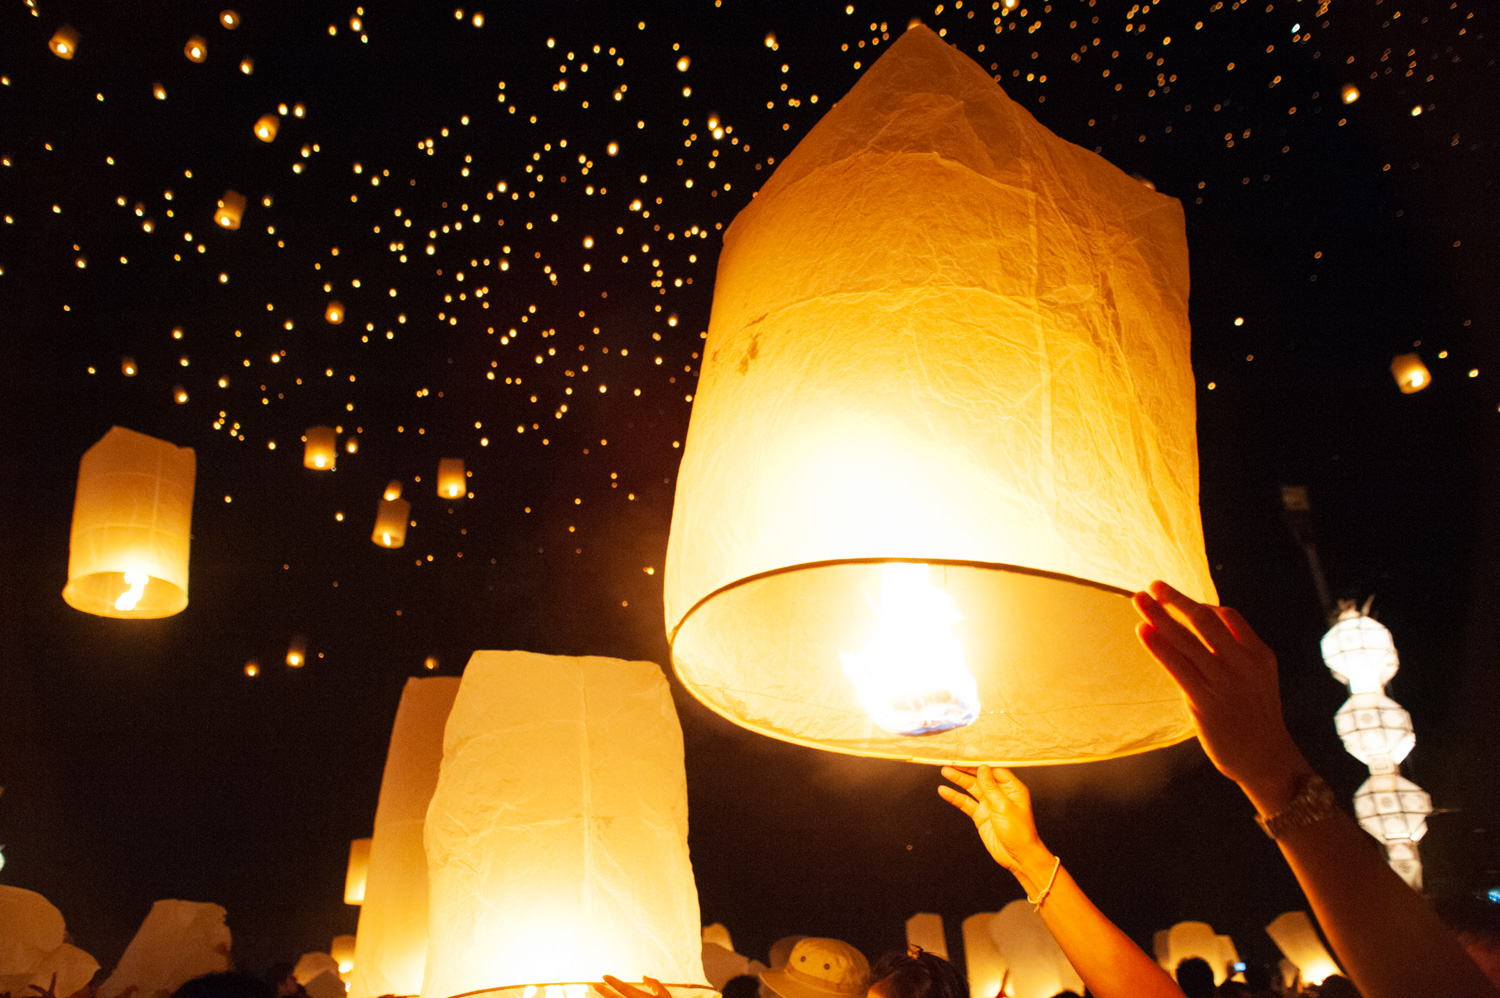 sky lanterns being released during the Loi Krathong festival in Thailand